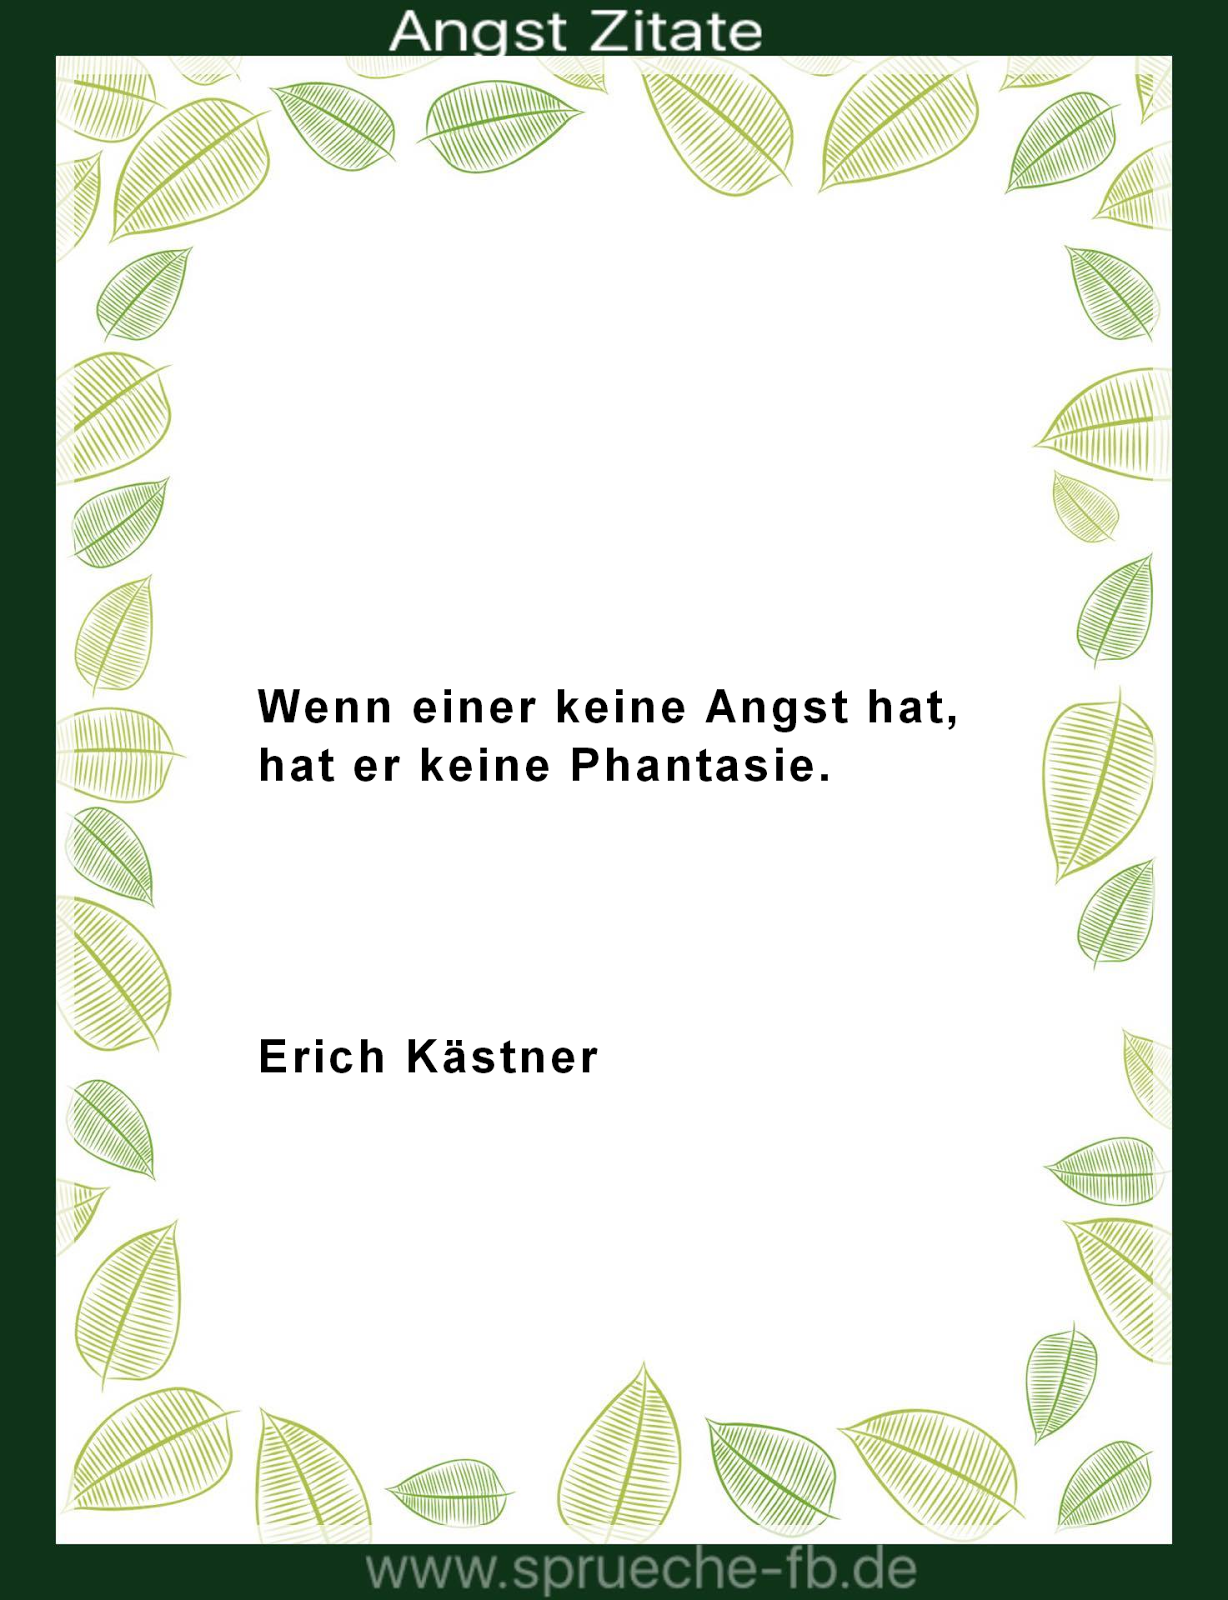 Angst+Zitate+1.png